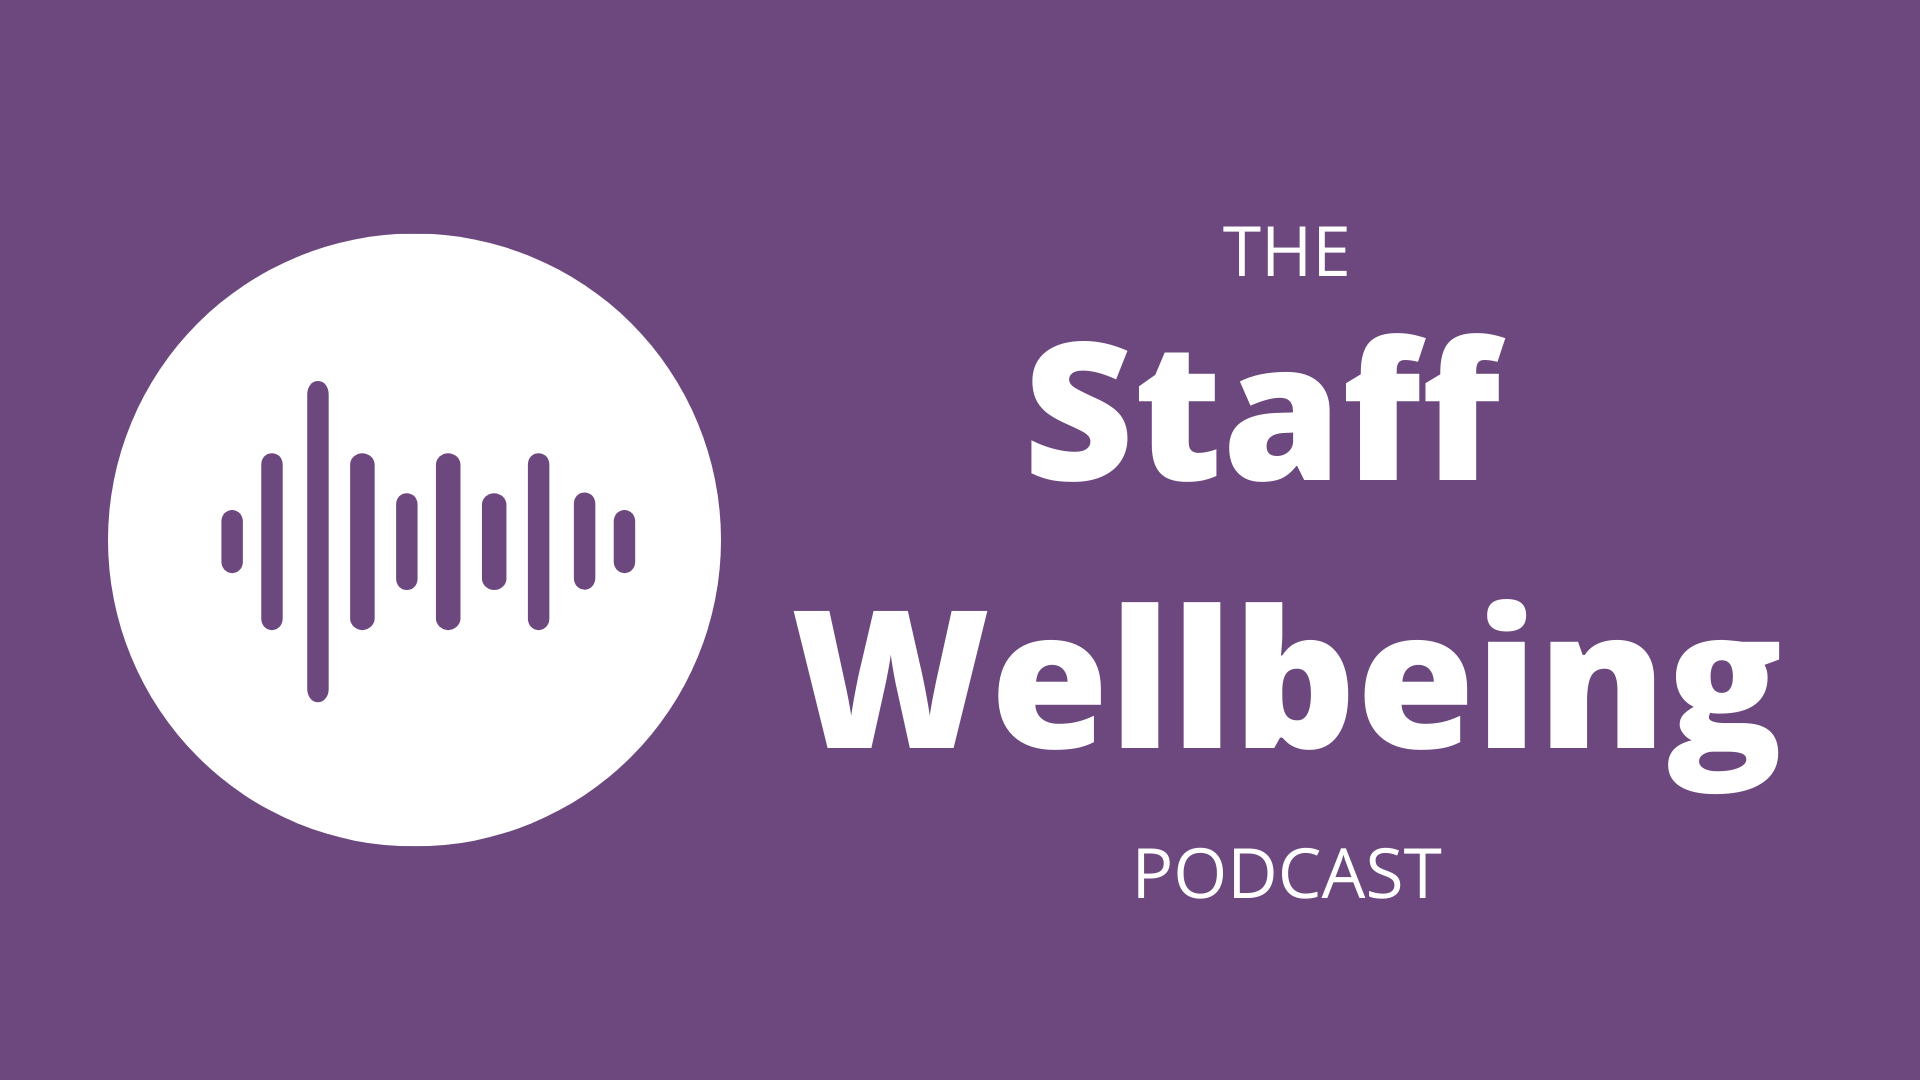 The Staff Wellbeing Podcast logo